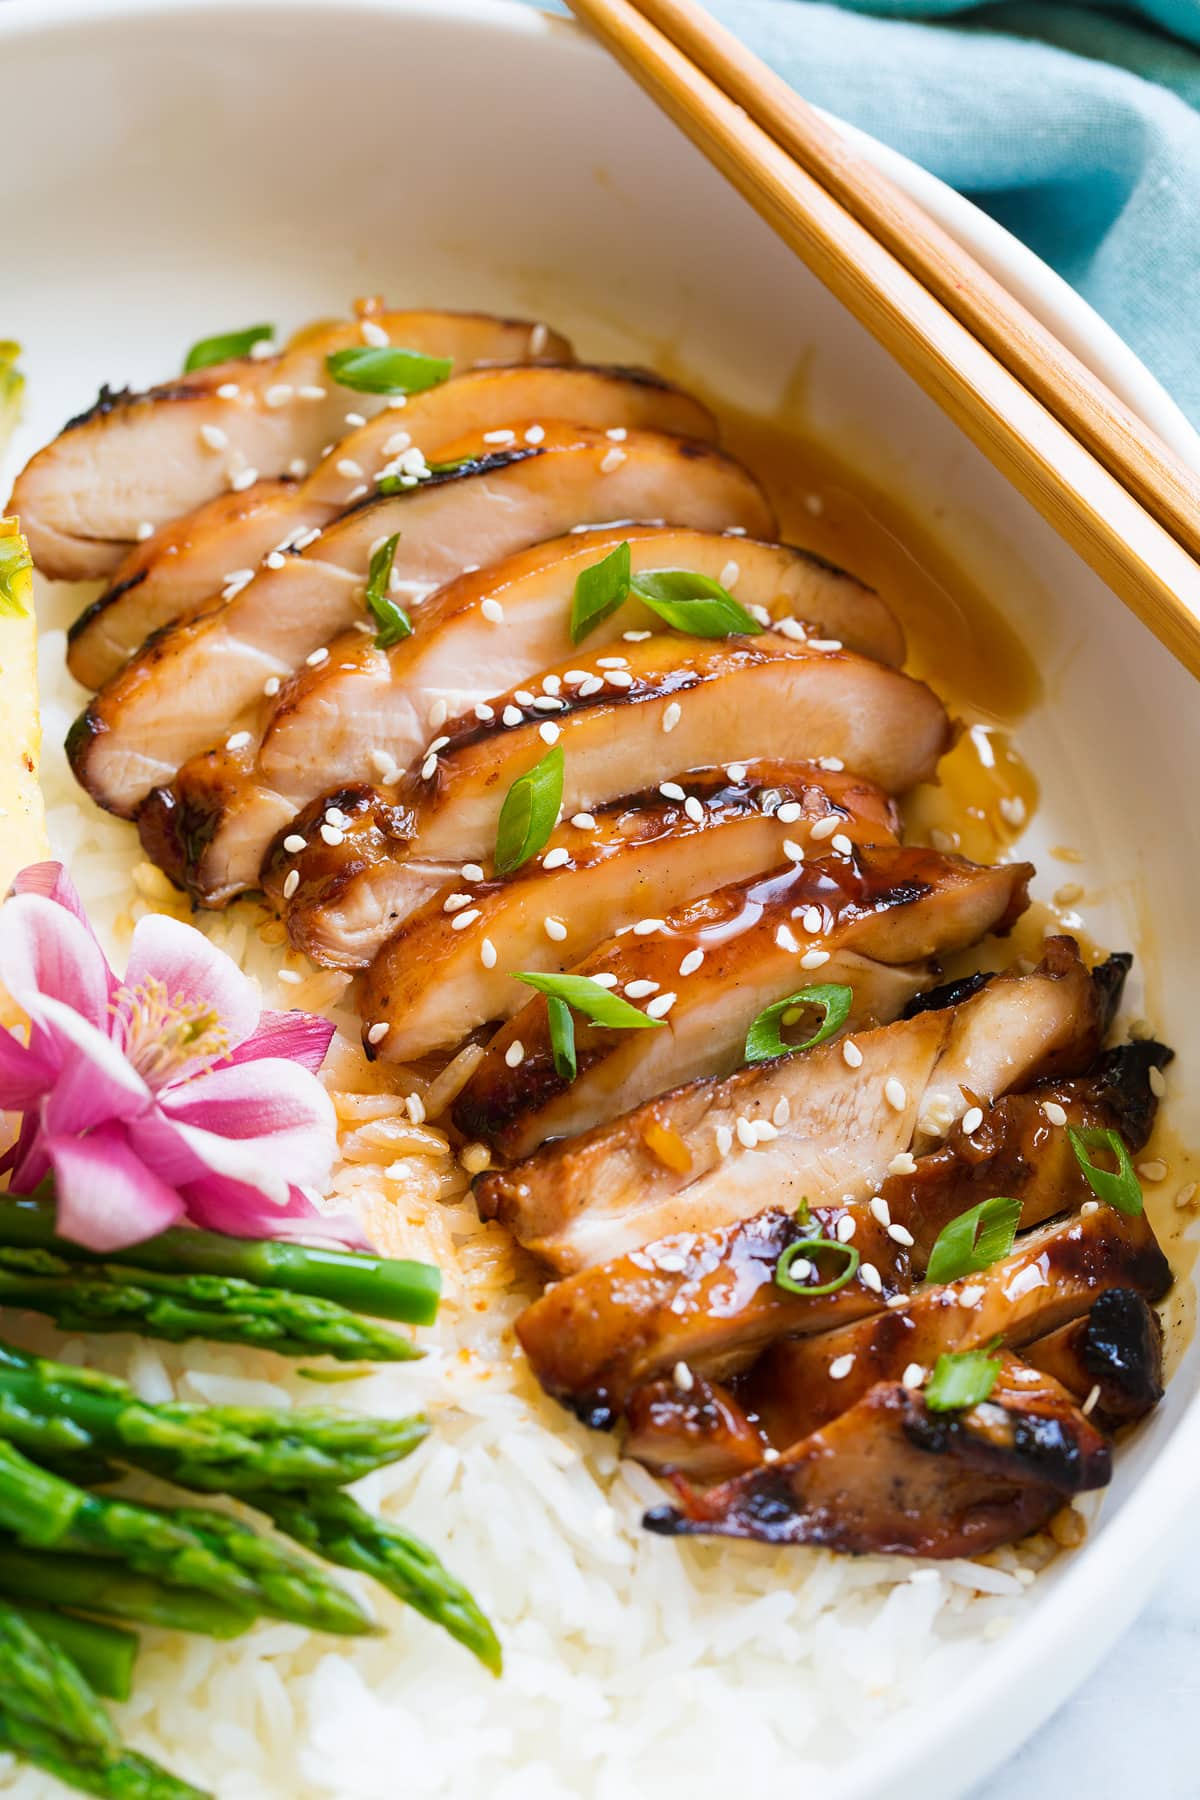 Sliced chicken thigh shown after cooking, covered in teriyaki sauce, sesame seeds and green onions.